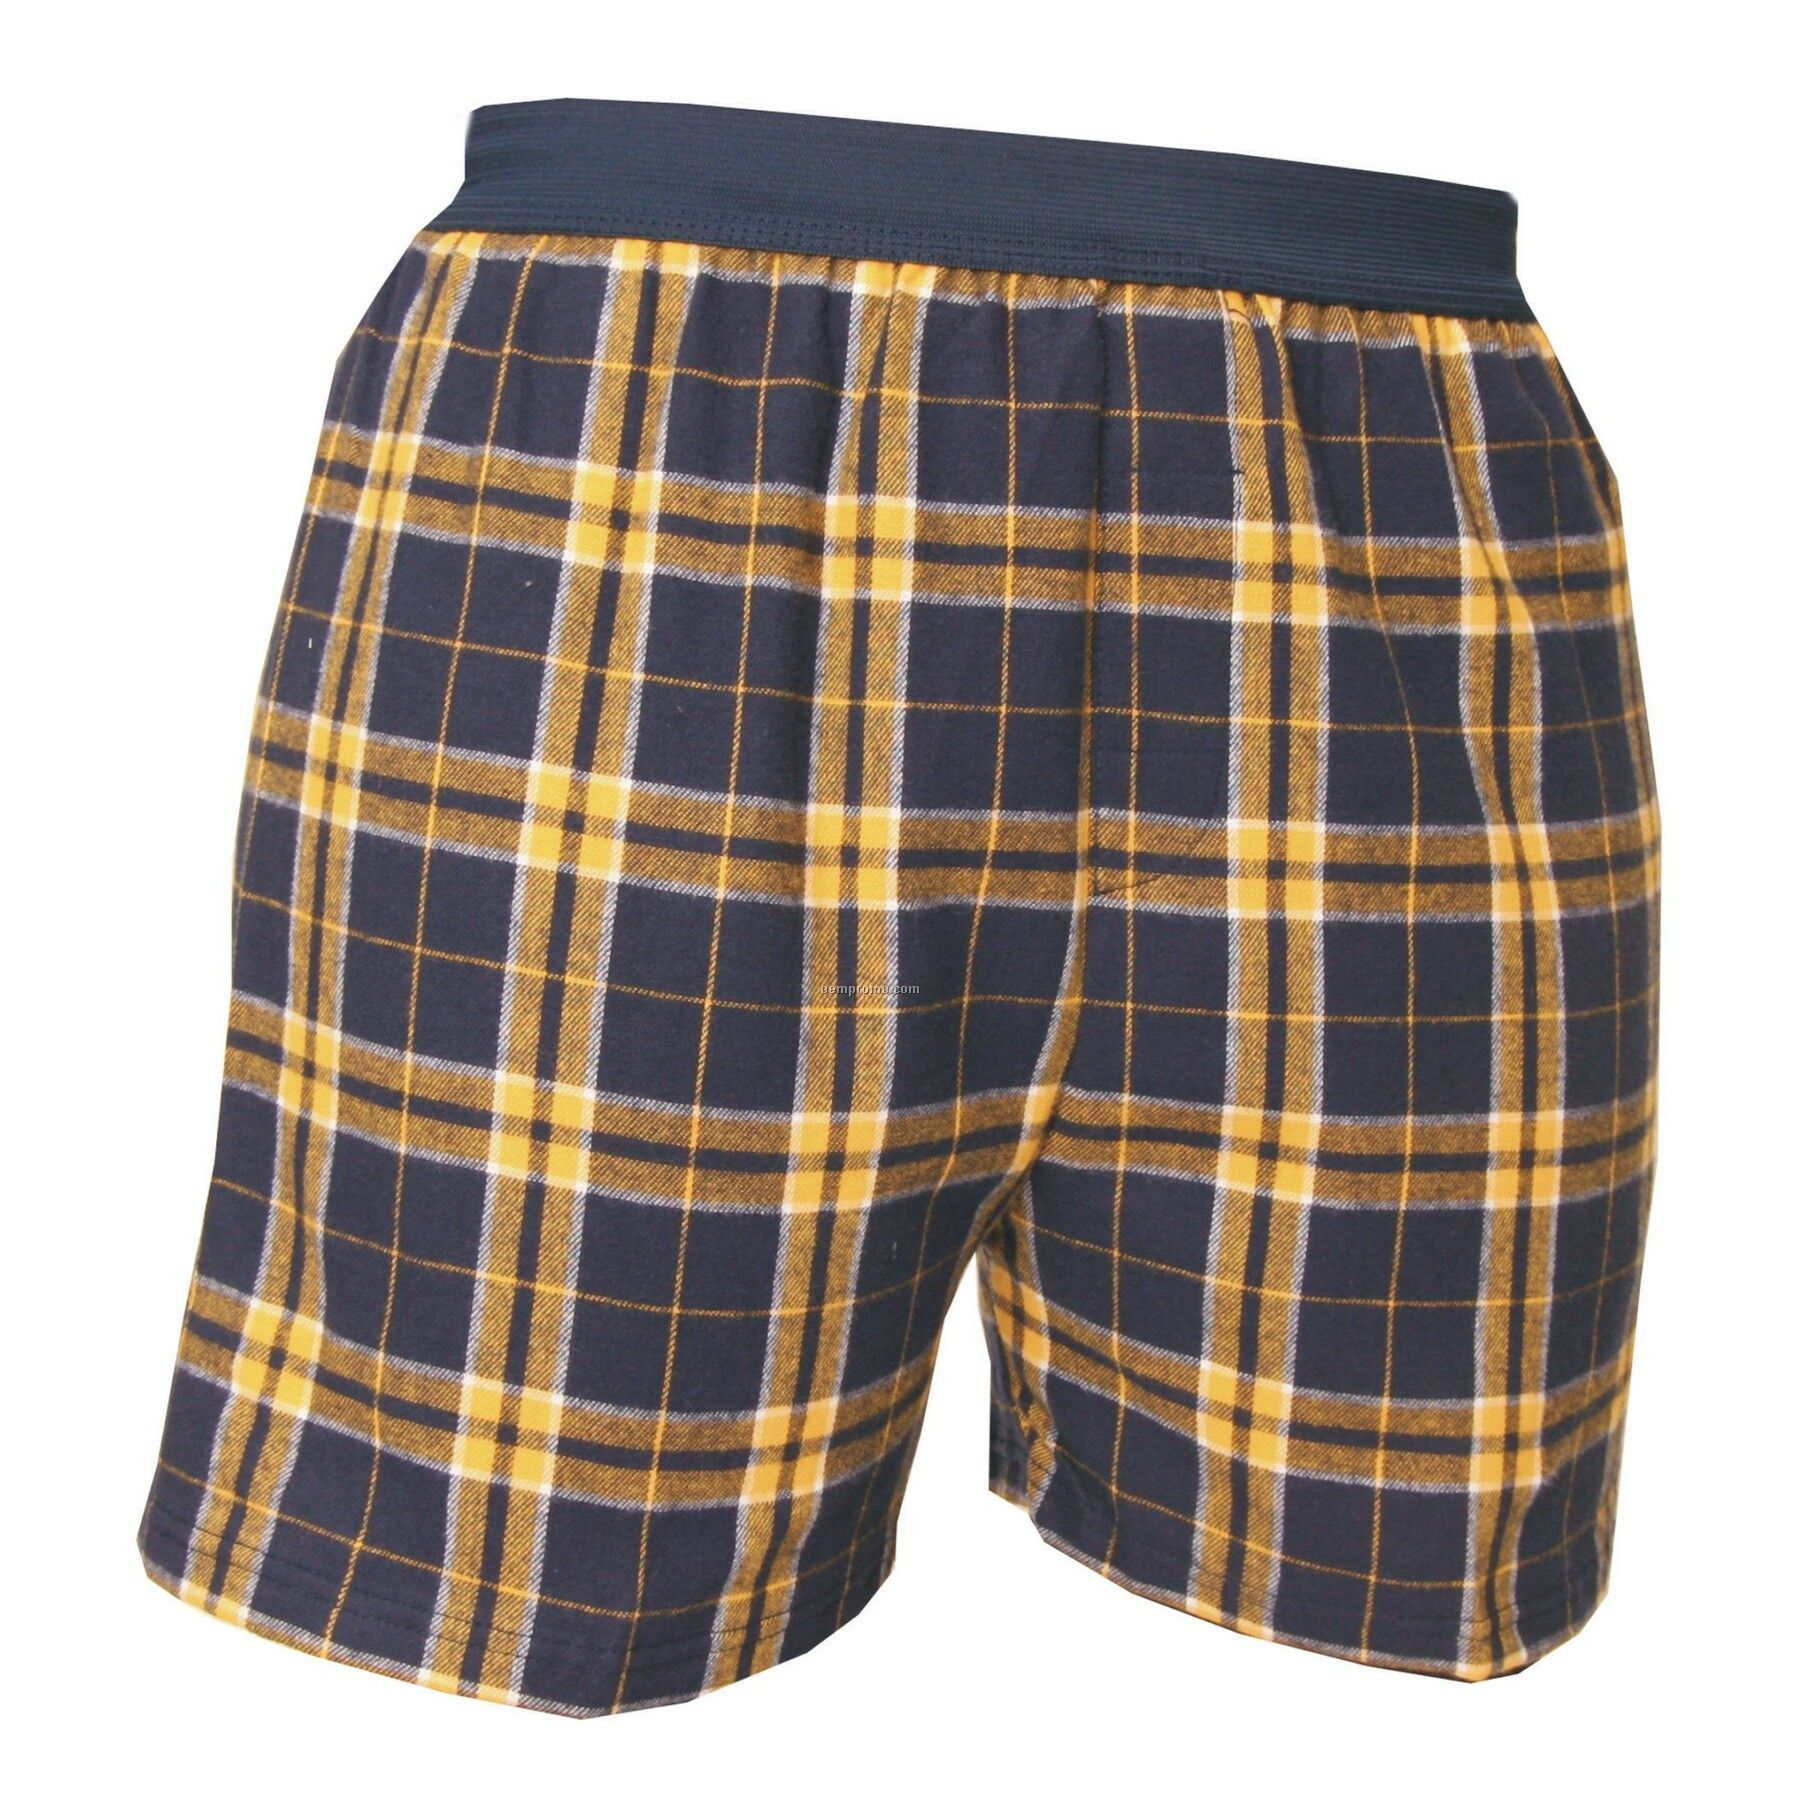 Youth Navy Blue/Gold Plaid Classic Boxer Short